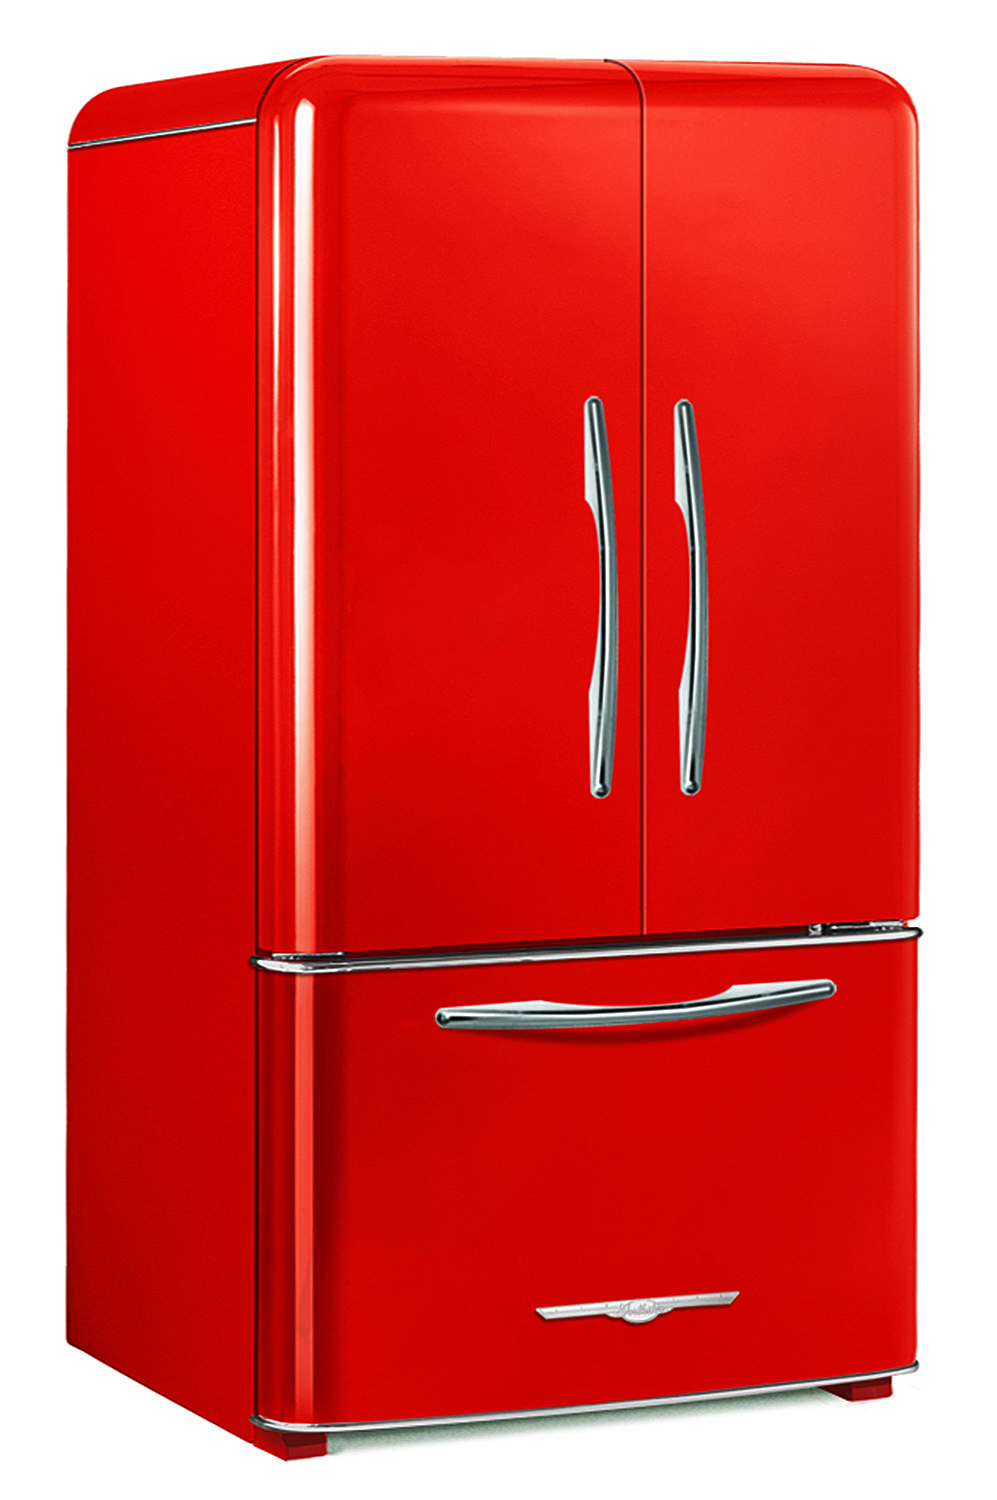 Perfect For My Coca Cola Kitchen Elmira Northstar Retro Fridges And Ranges 1950 Retro Contemporary And Modern Kitchen Appliances